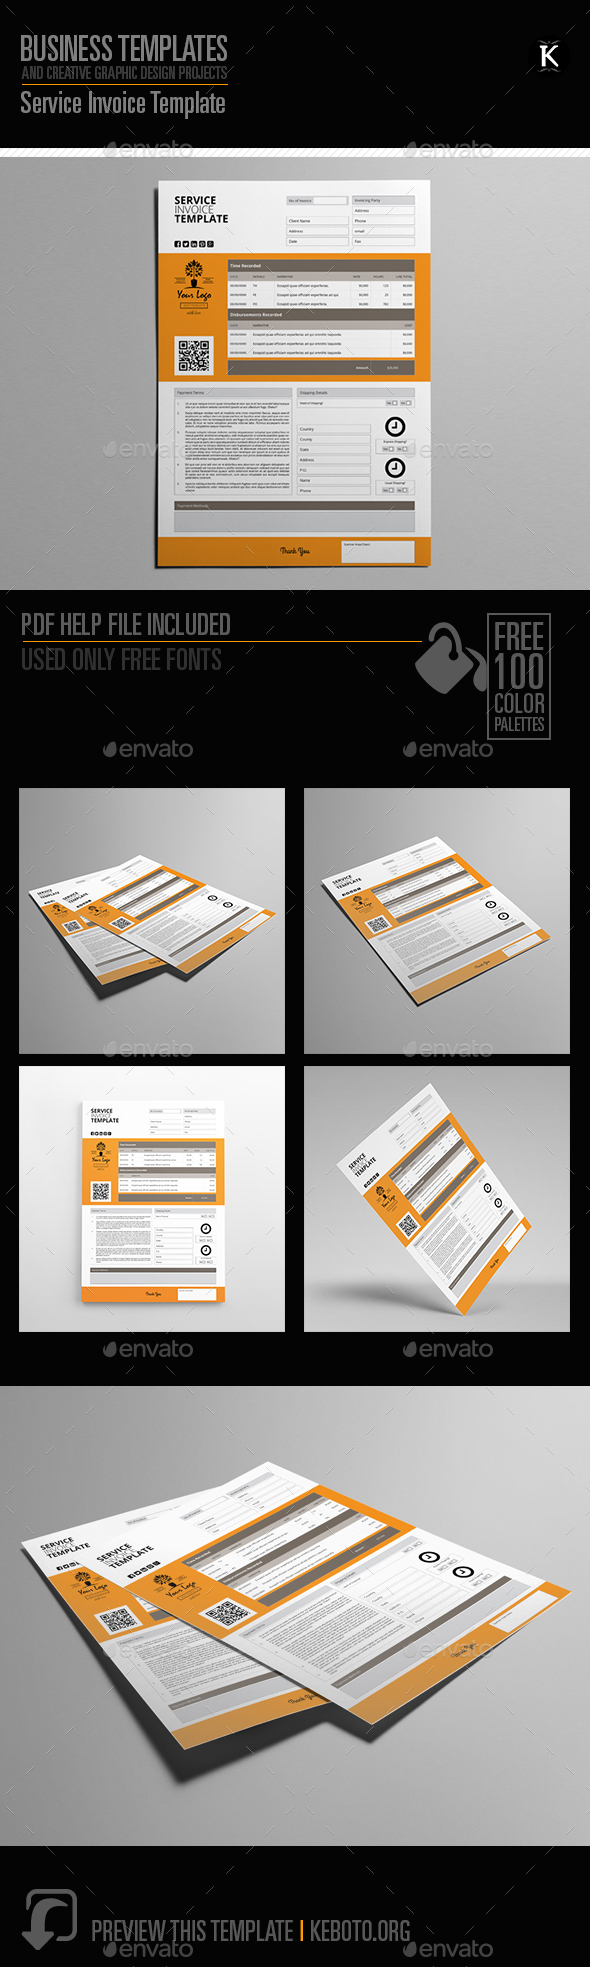 Service Invoice Template by Keboto   GraphicRiver Service Invoice Template   Proposals   Invoices Stationery